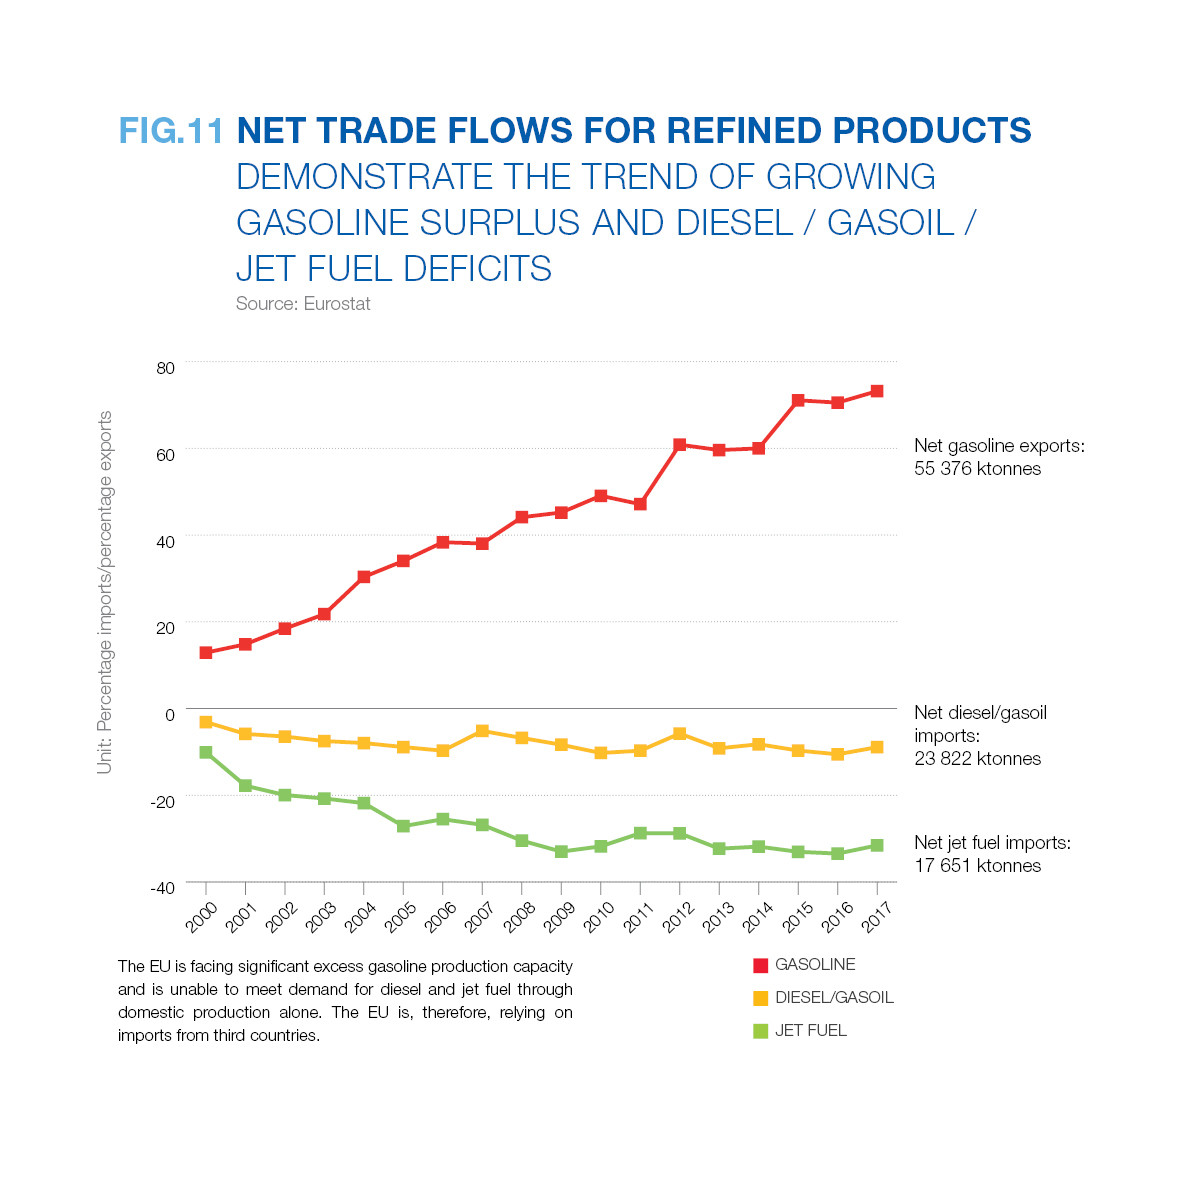 net trade flows for refined products demonstrate the trend of growing  gasoline surplus and diesel/ gasoil/ jet fuel deficits